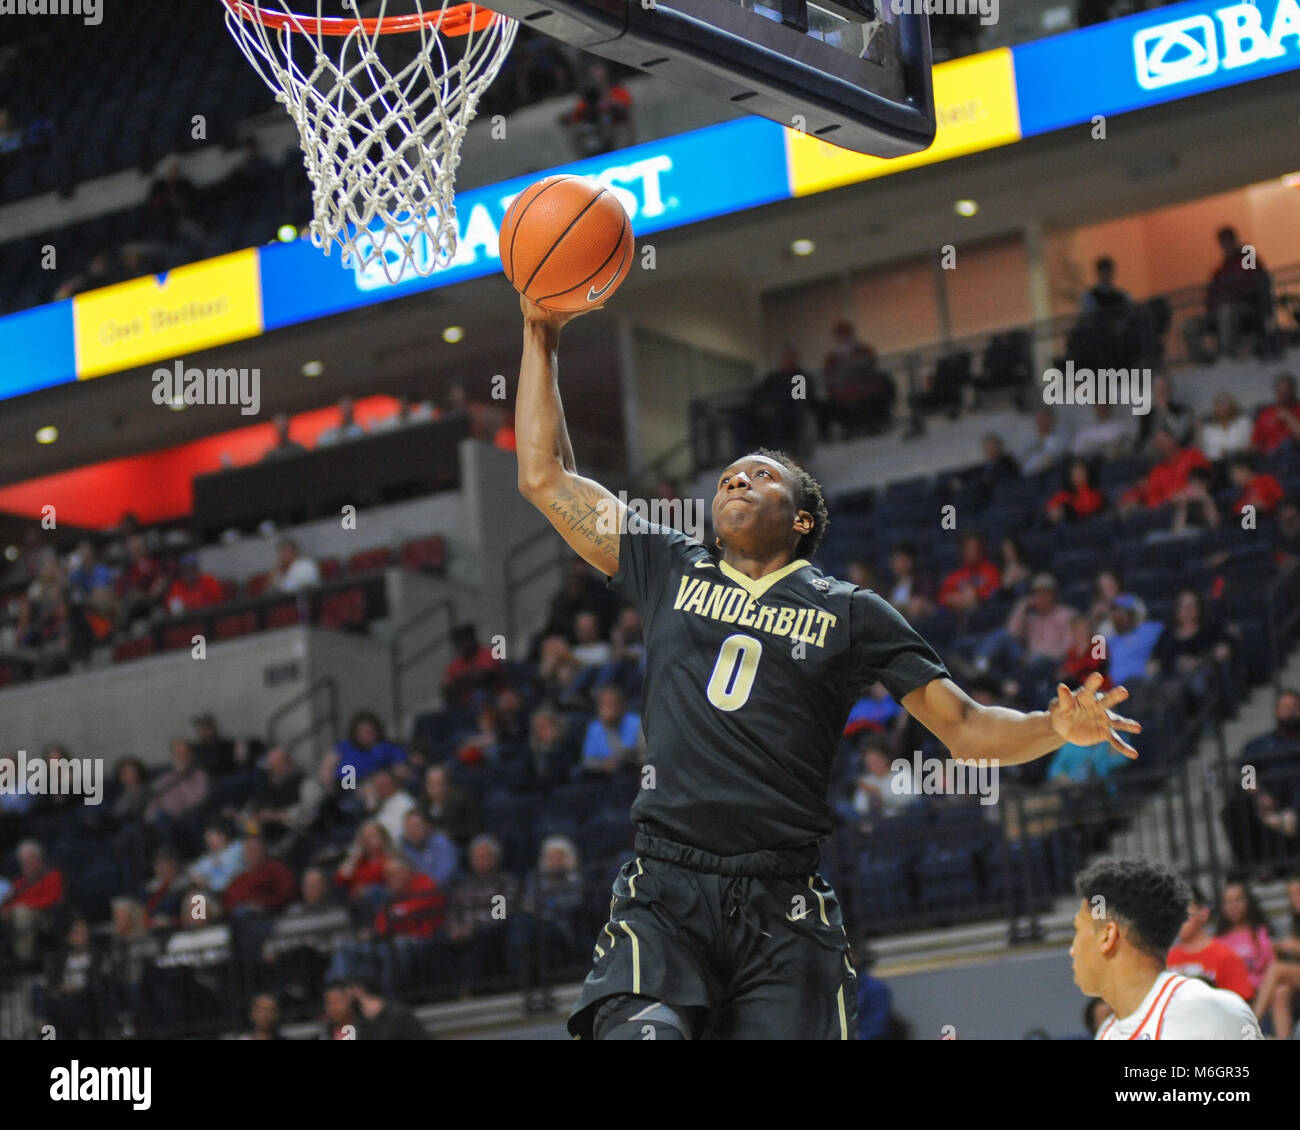 March 03, 2018; Oxford, MS, USA; Vanderbilt guard, Saben Lee (0), heads to the hoop for the lay up. The Vanderbilt - Stock Image